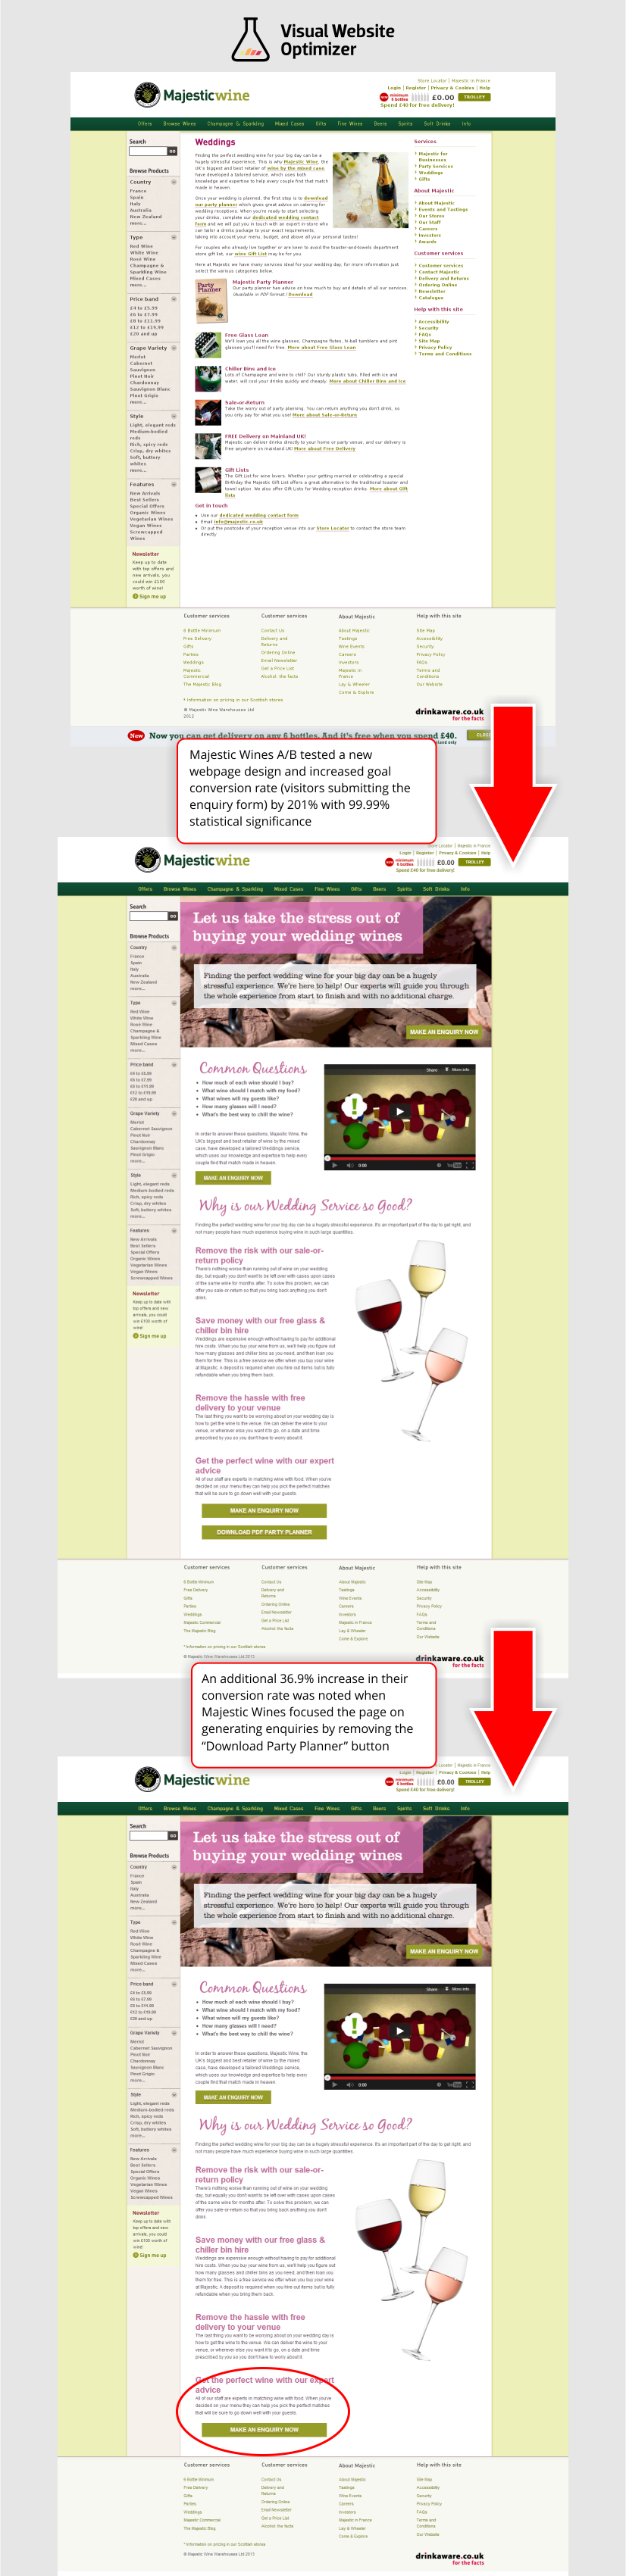 Entire process of Majestic Wines' conversion rate optimization that resulted in 201% increase in leads generated